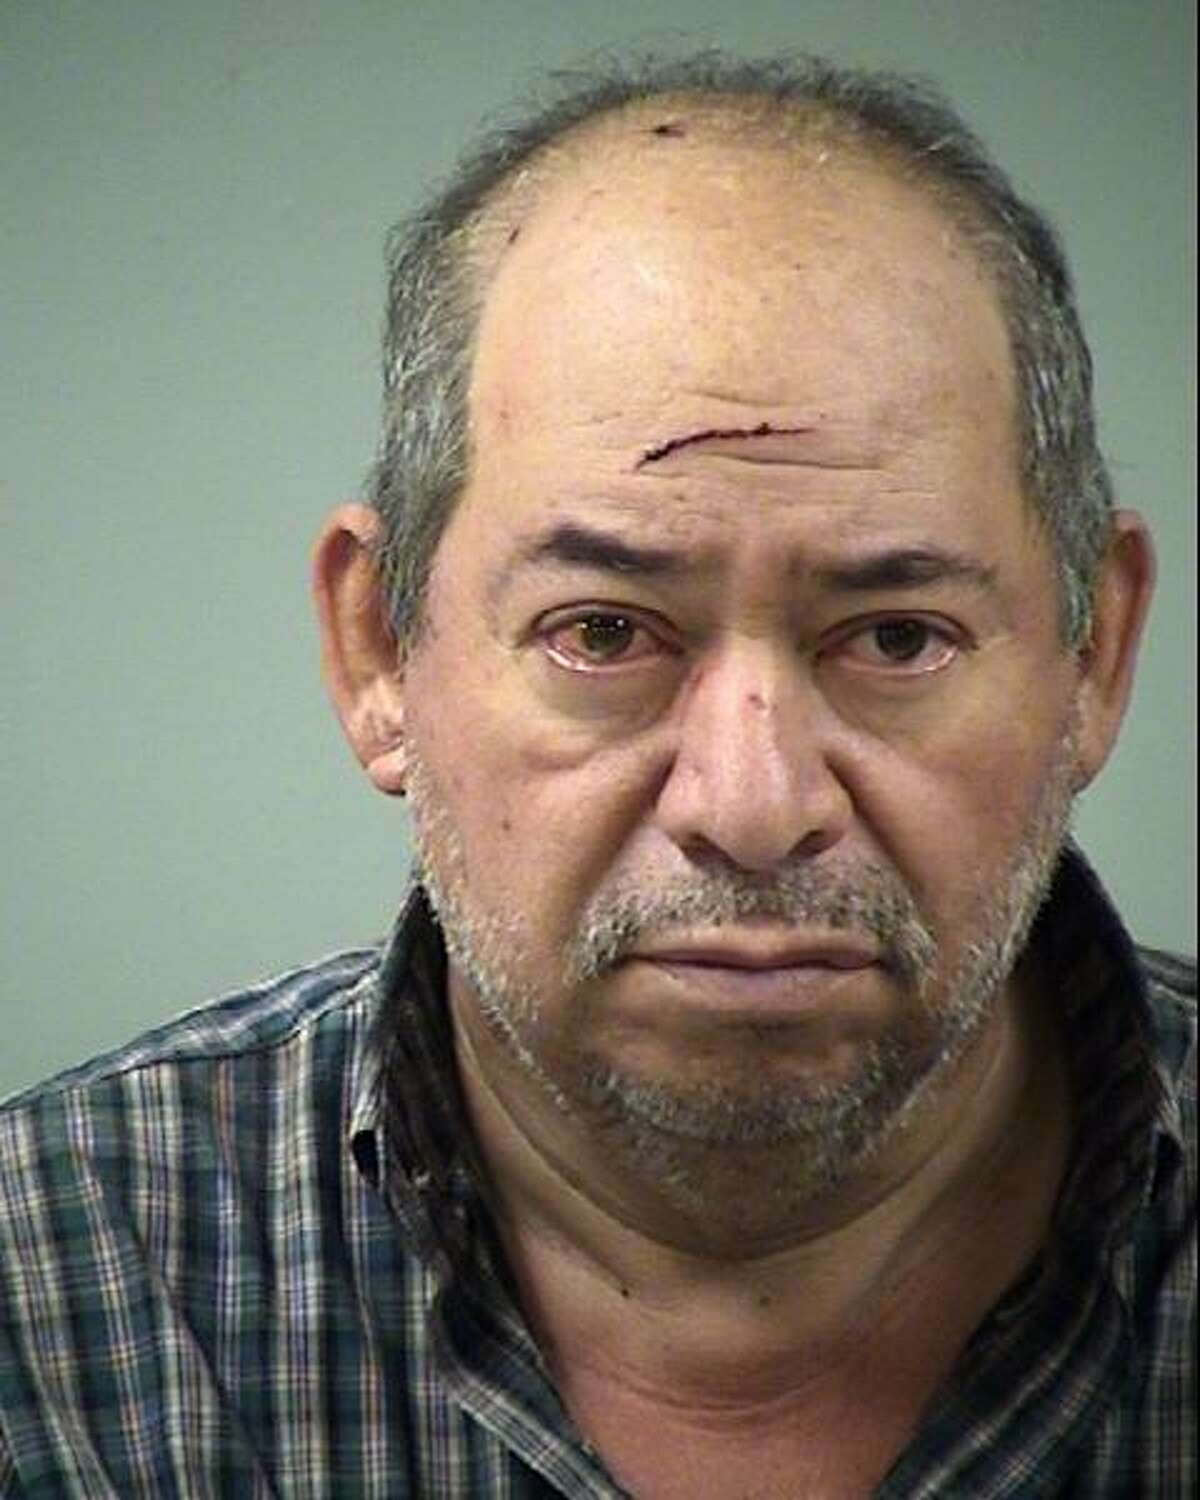 Jose Baca-Olivares, 58, who had four active felony warrants, died during an officer-involved shooting at the Texas Diabetes Institute-University Health System in the 2700 block of San Luis Street at 9 a.m. on Wednesday, July 31, 2019, U.S. Marshal Public Information Officer Chris Bozeman said.